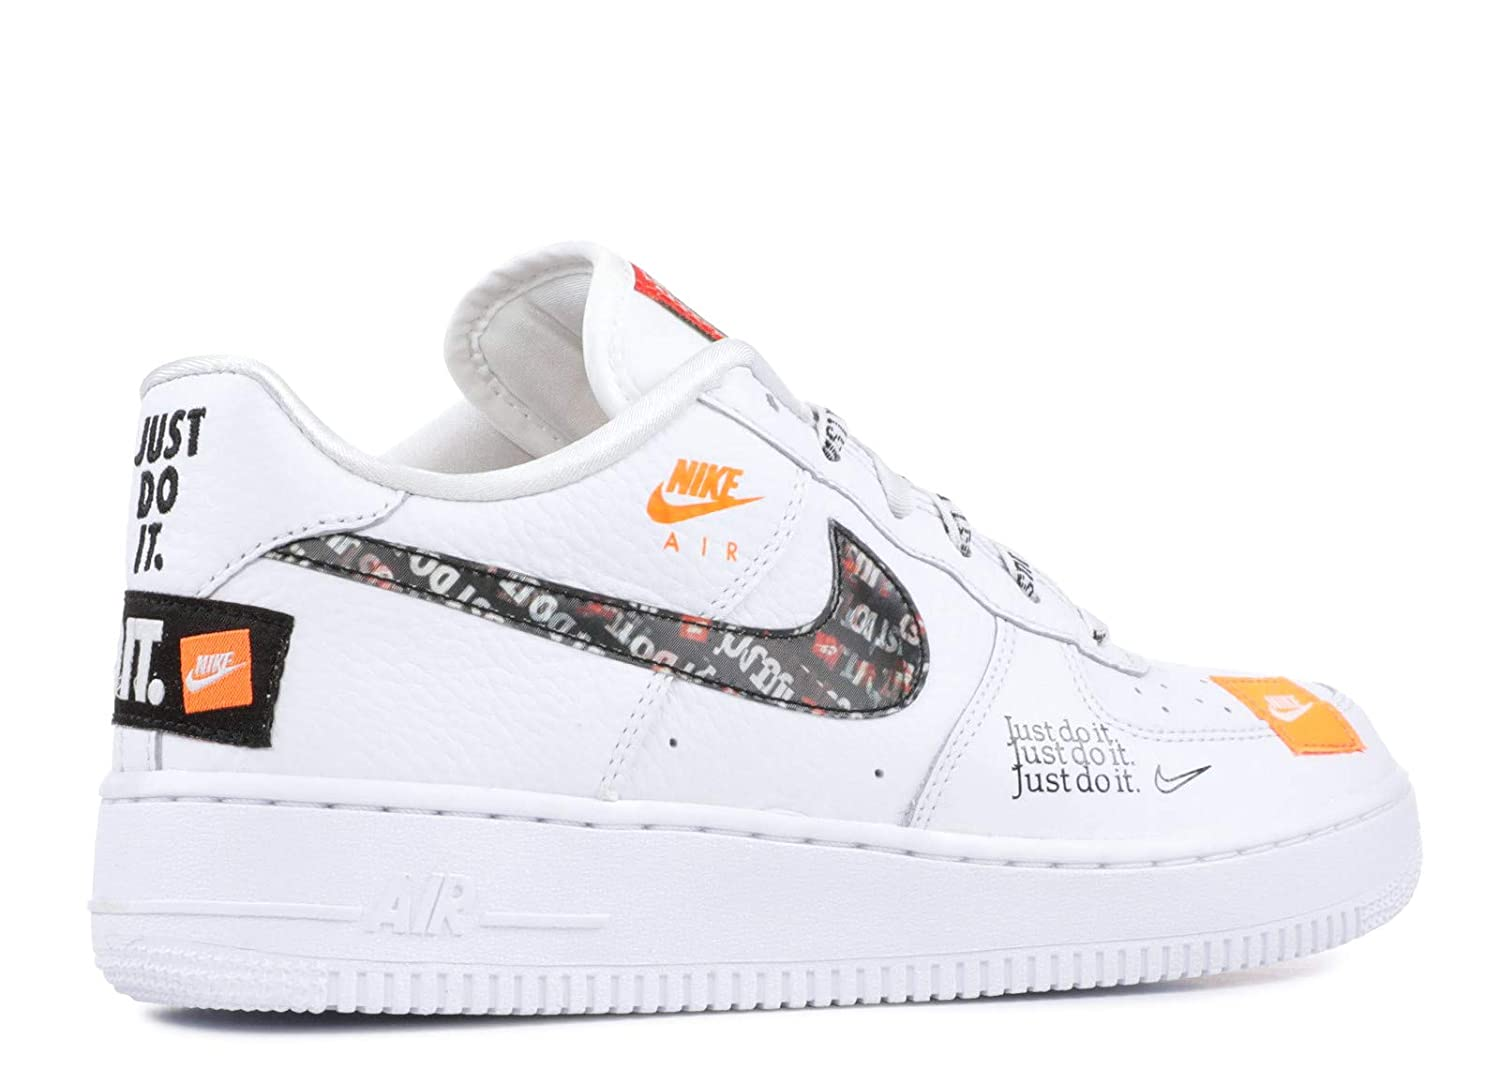 quality design 39bbc 3c7ea NIKE Air Force 1 JDI (Just Do It) Premium (Kids)